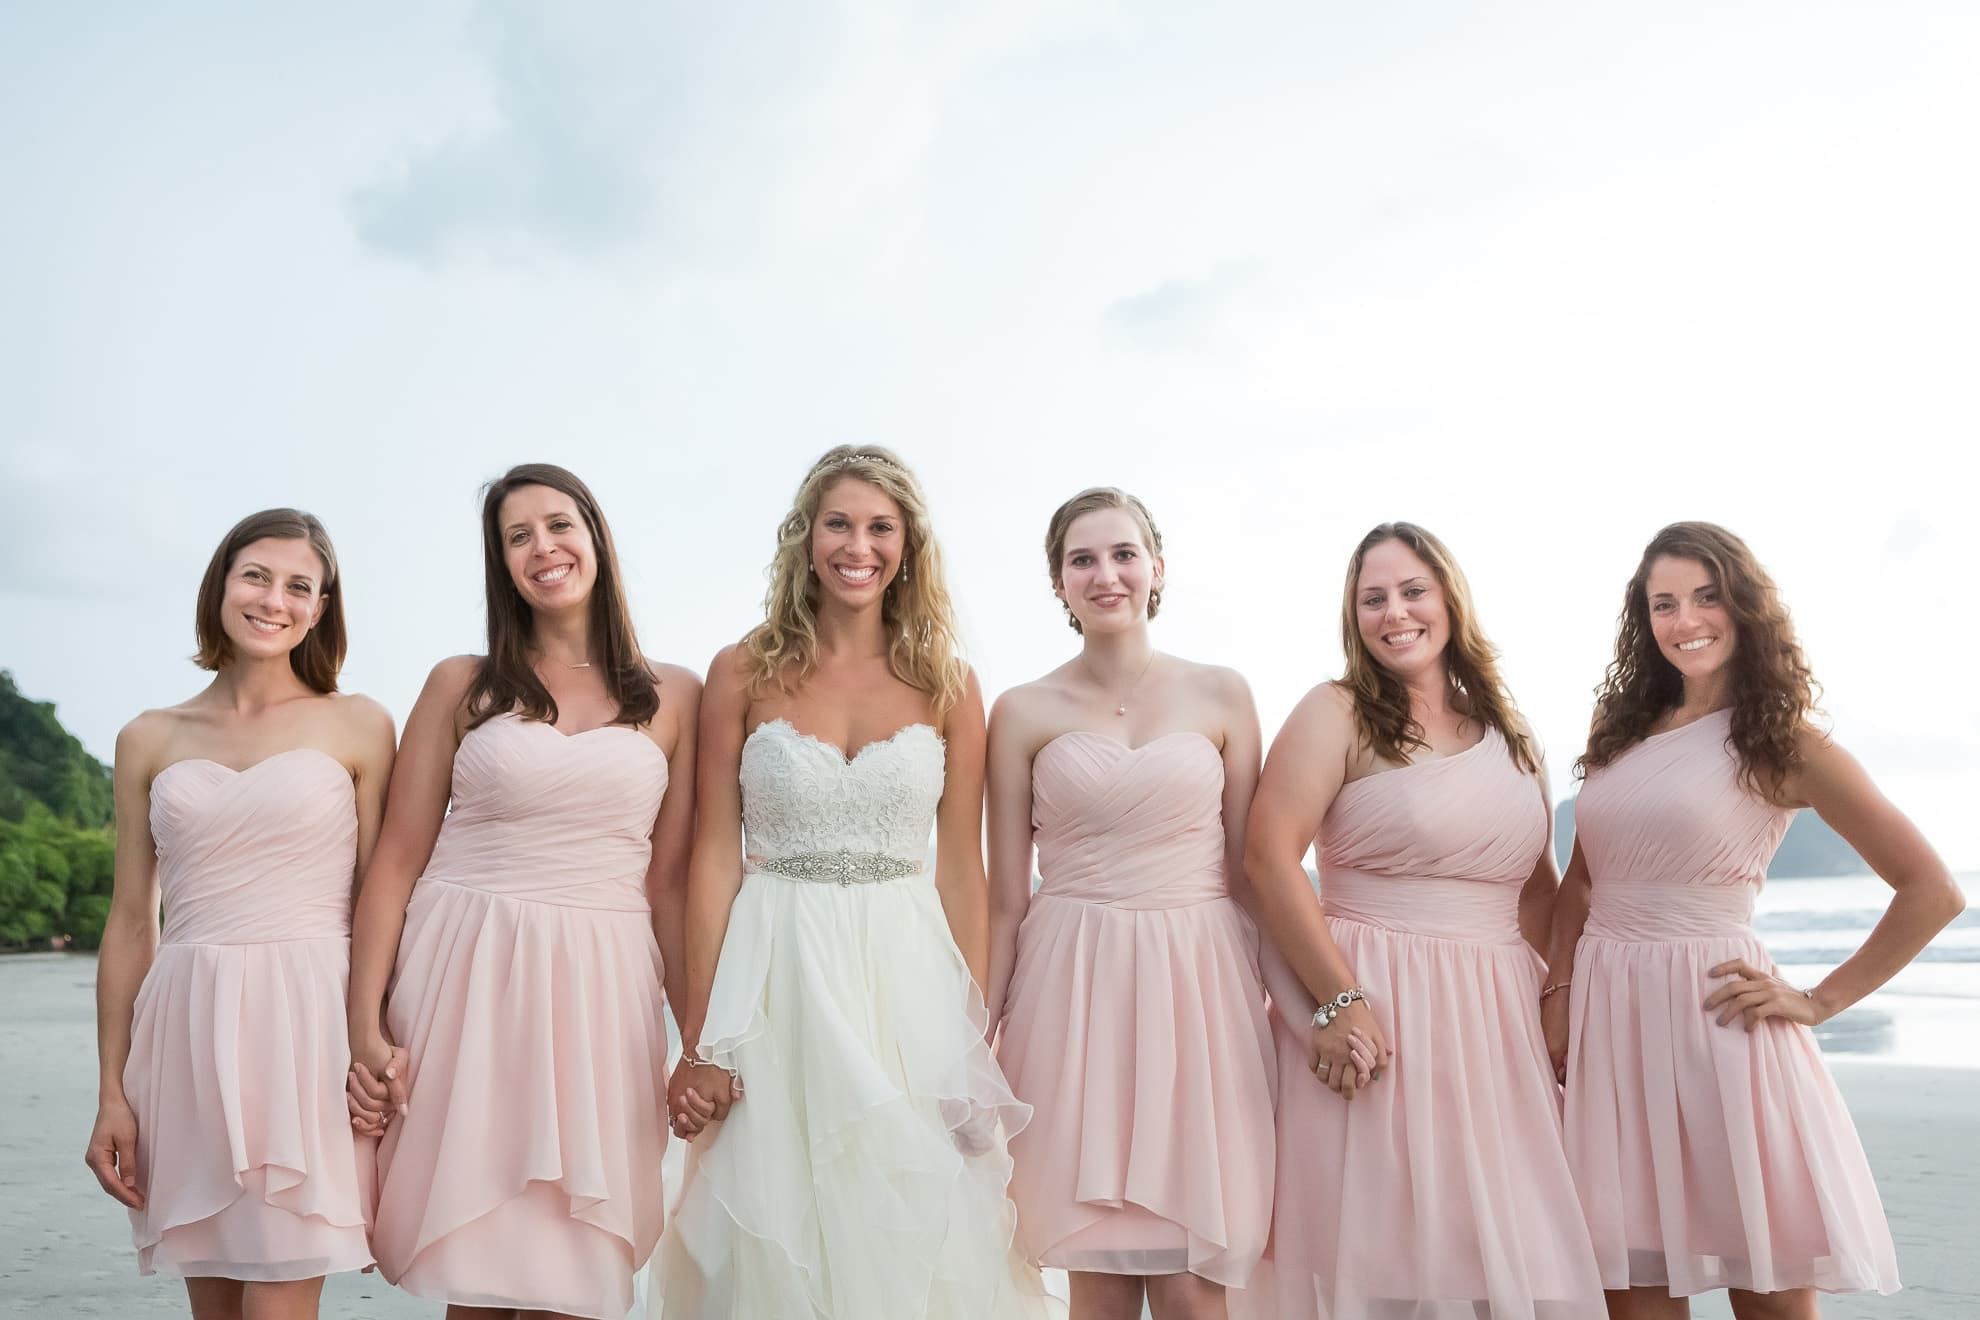 Bride with bridesmaids in Costa Rica at tropical beach wedding